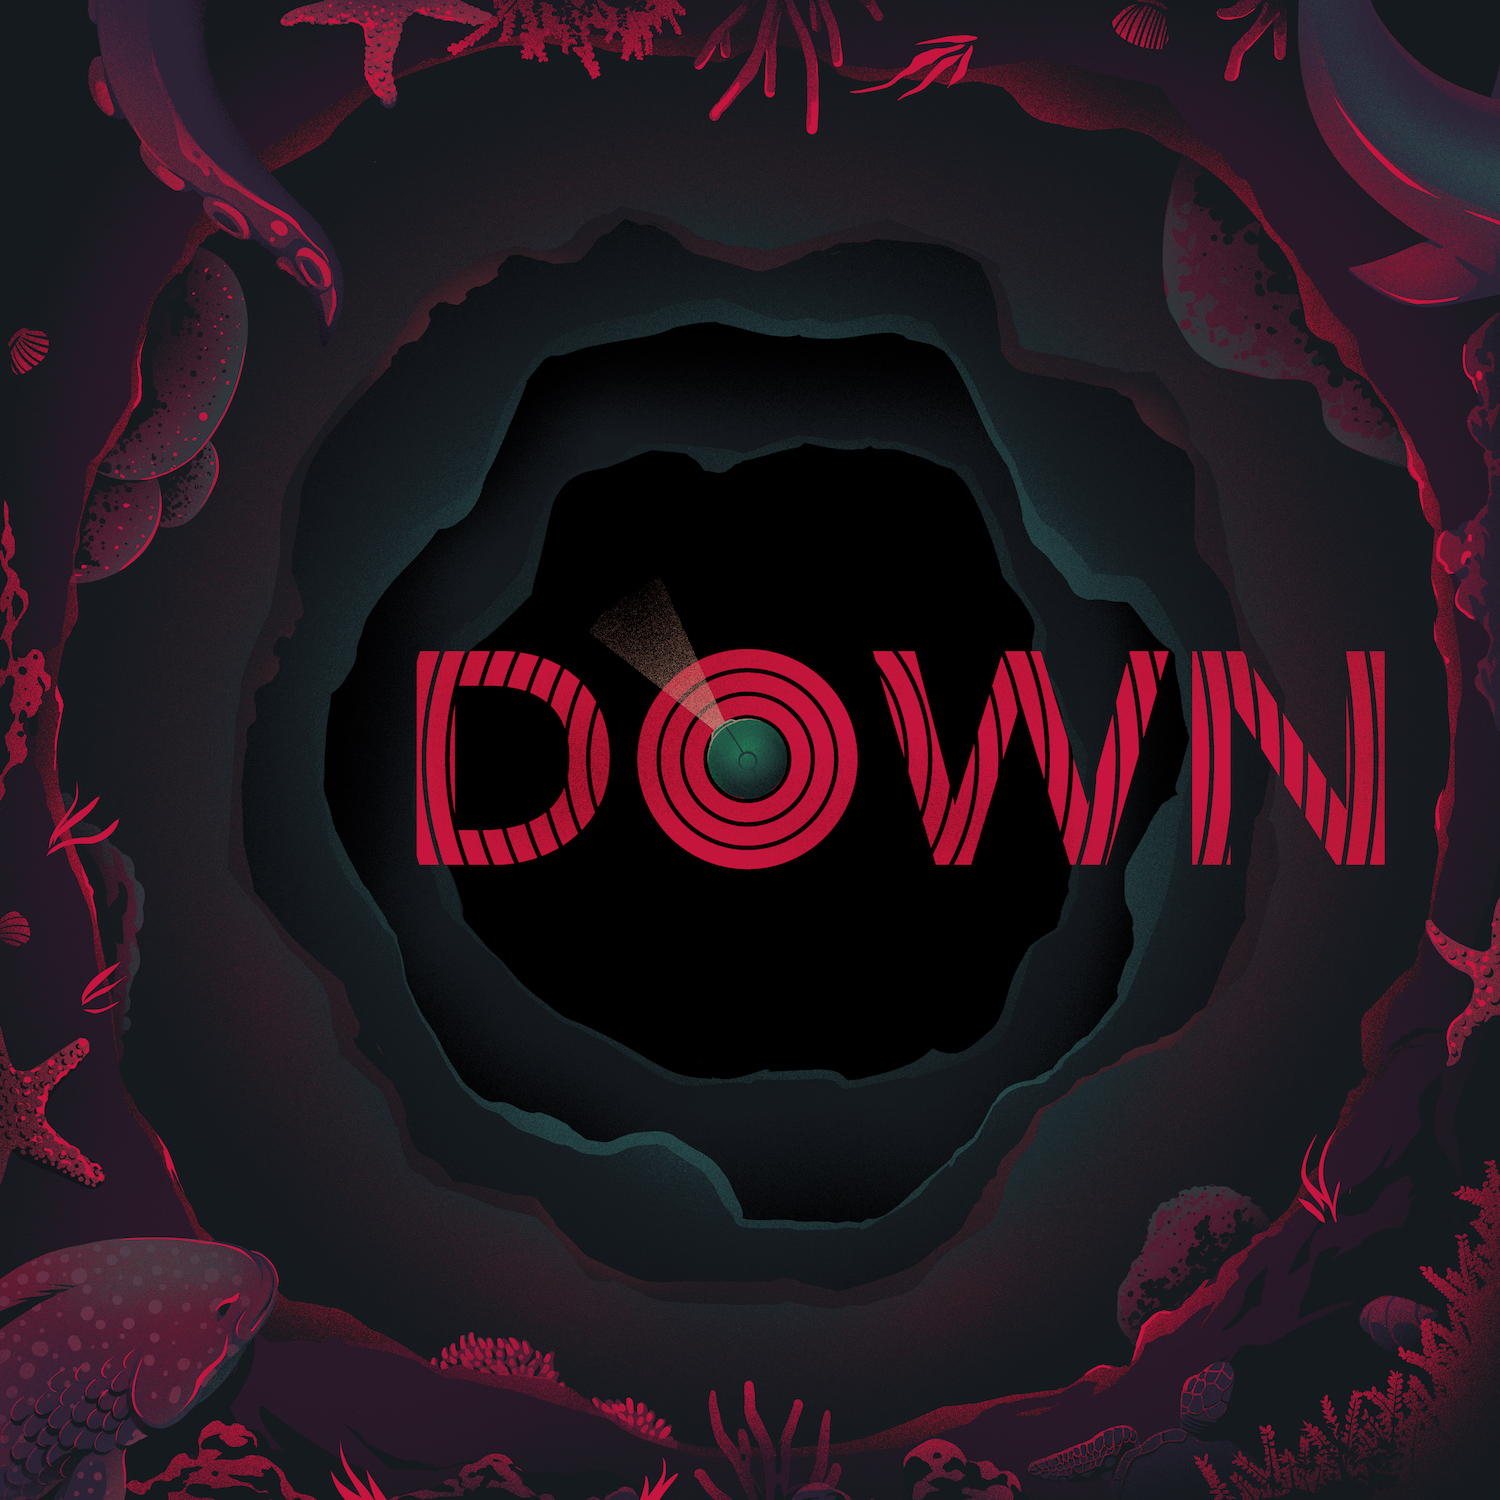 Down cover image